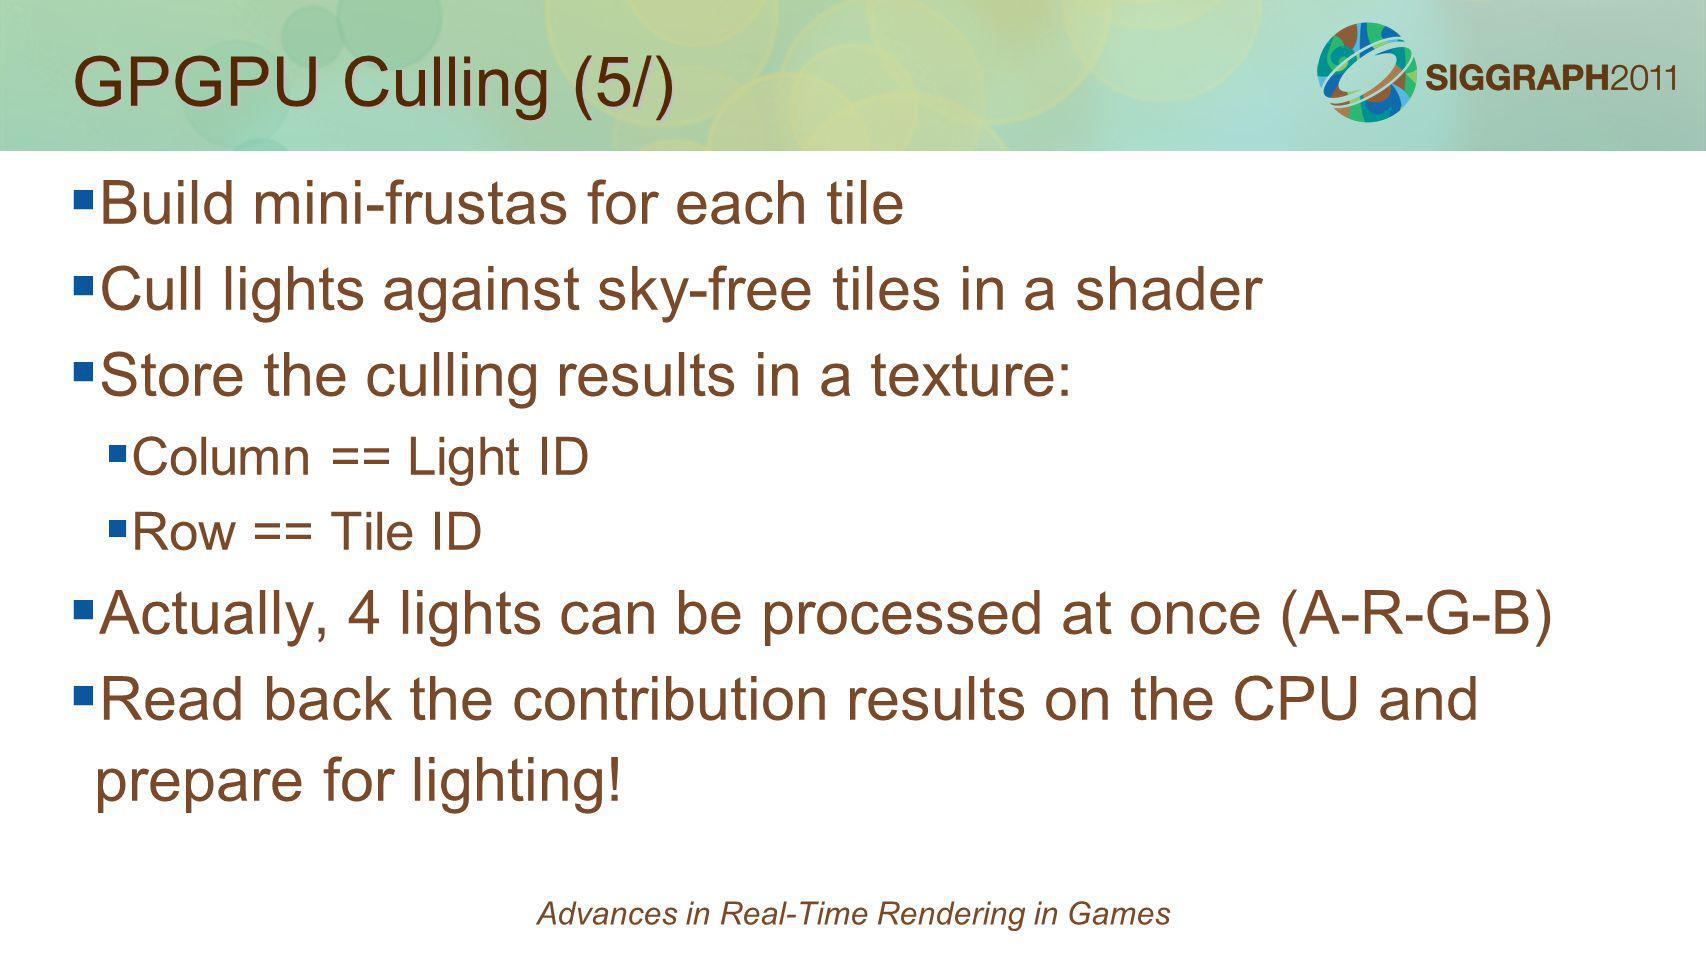 GPGPU Culling (5/) Build mini-frustas for each tile Cull lights against sky-free tiles in a shader Store the culling results in a texture: Column == L